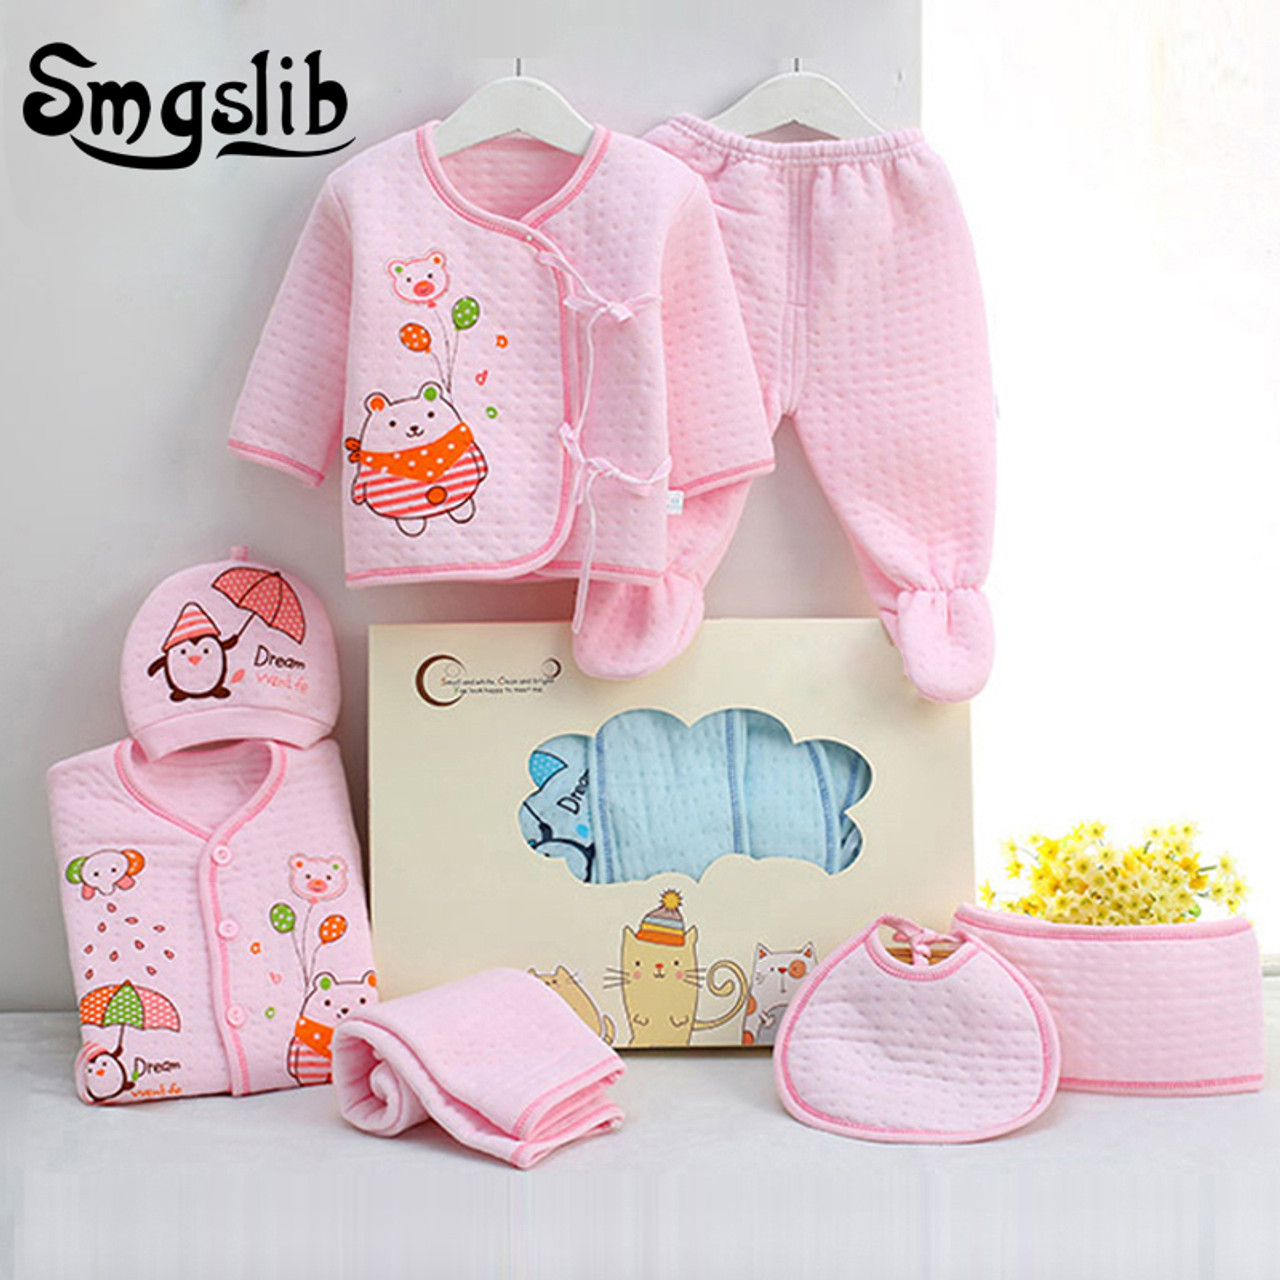 870a9fdc6 7pcs lot Baby girl Clothes infant newborn clothes 0 3 Months Toddler ...